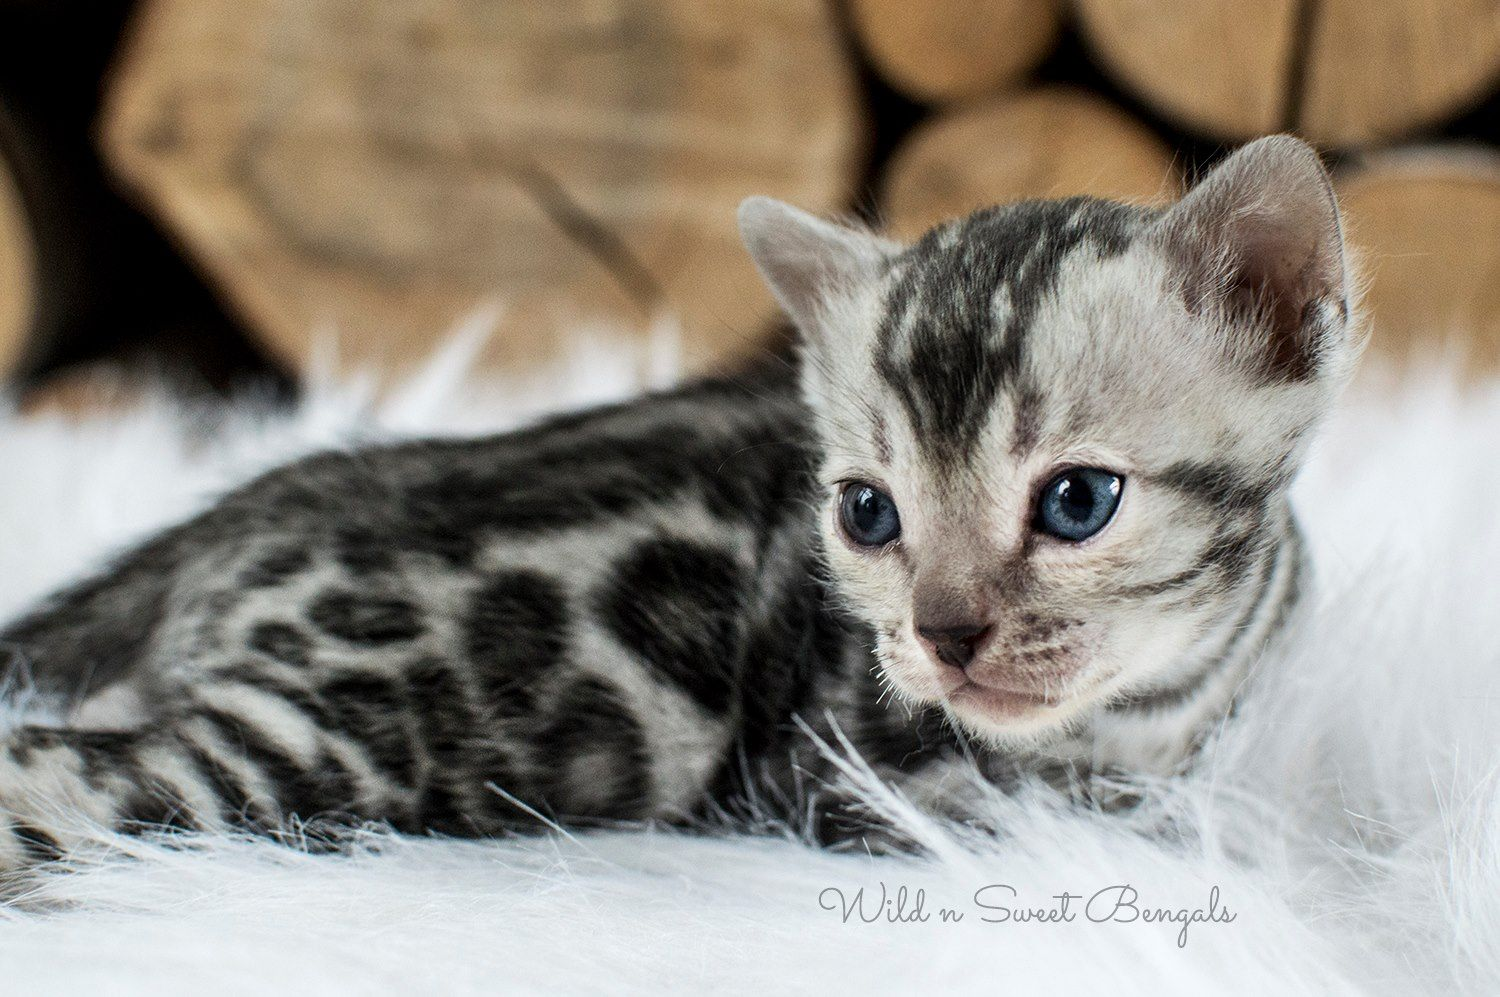 This Is An Incredible True Story About Our Little Silver Bengal Kitten Calvin Learn More About Him On Our Instagra Bengal Kitten Cats And Kittens Bengal Cat